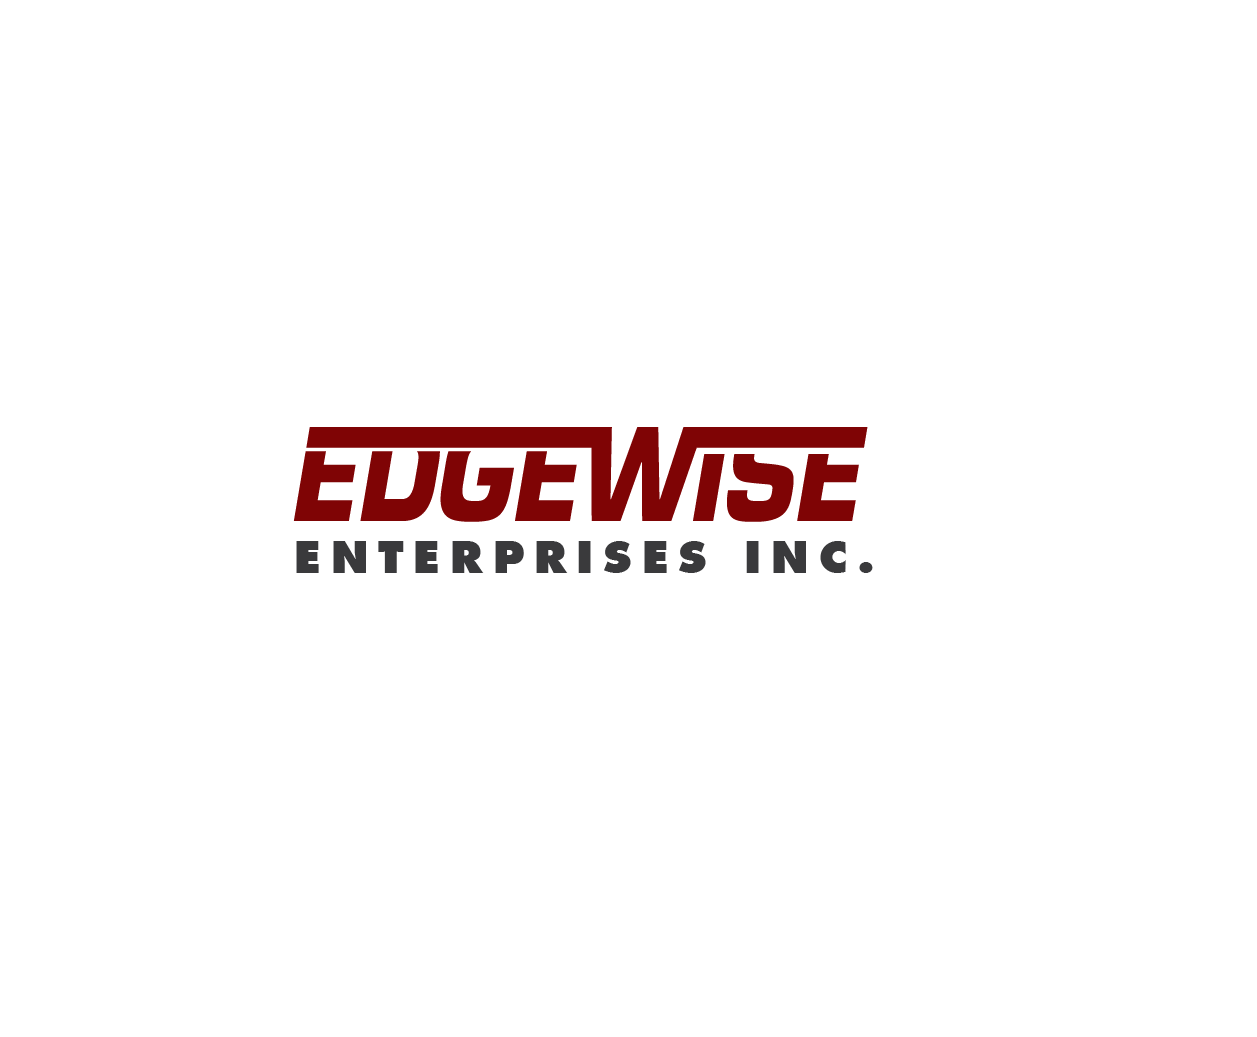 Logo Design by iwyn - Entry No. 62 in the Logo Design Contest New Logo Design for Edgewise Enterprises Inc..